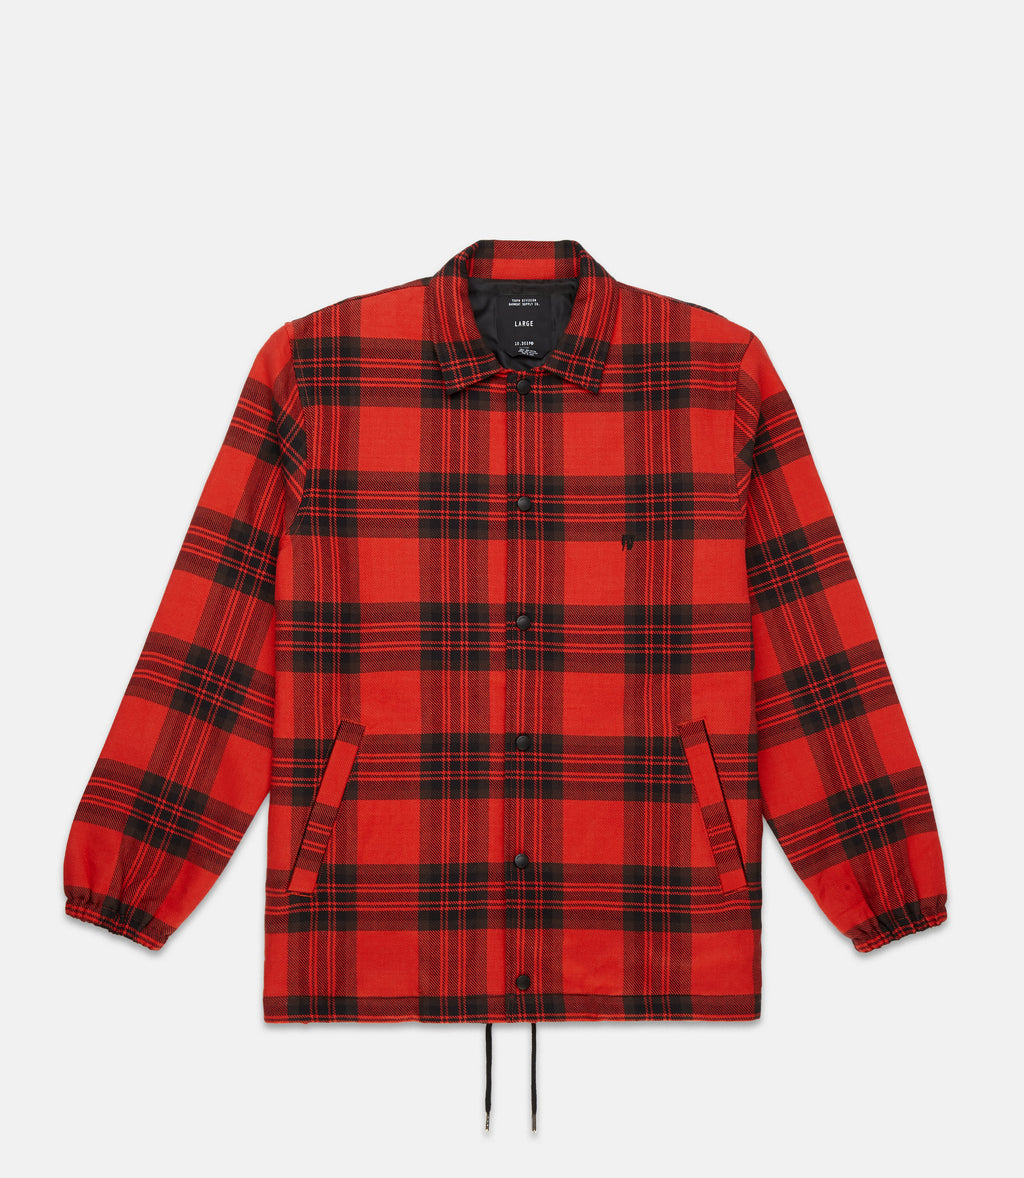 10Deep -  Flannel Men's Coach's Jacket, Red